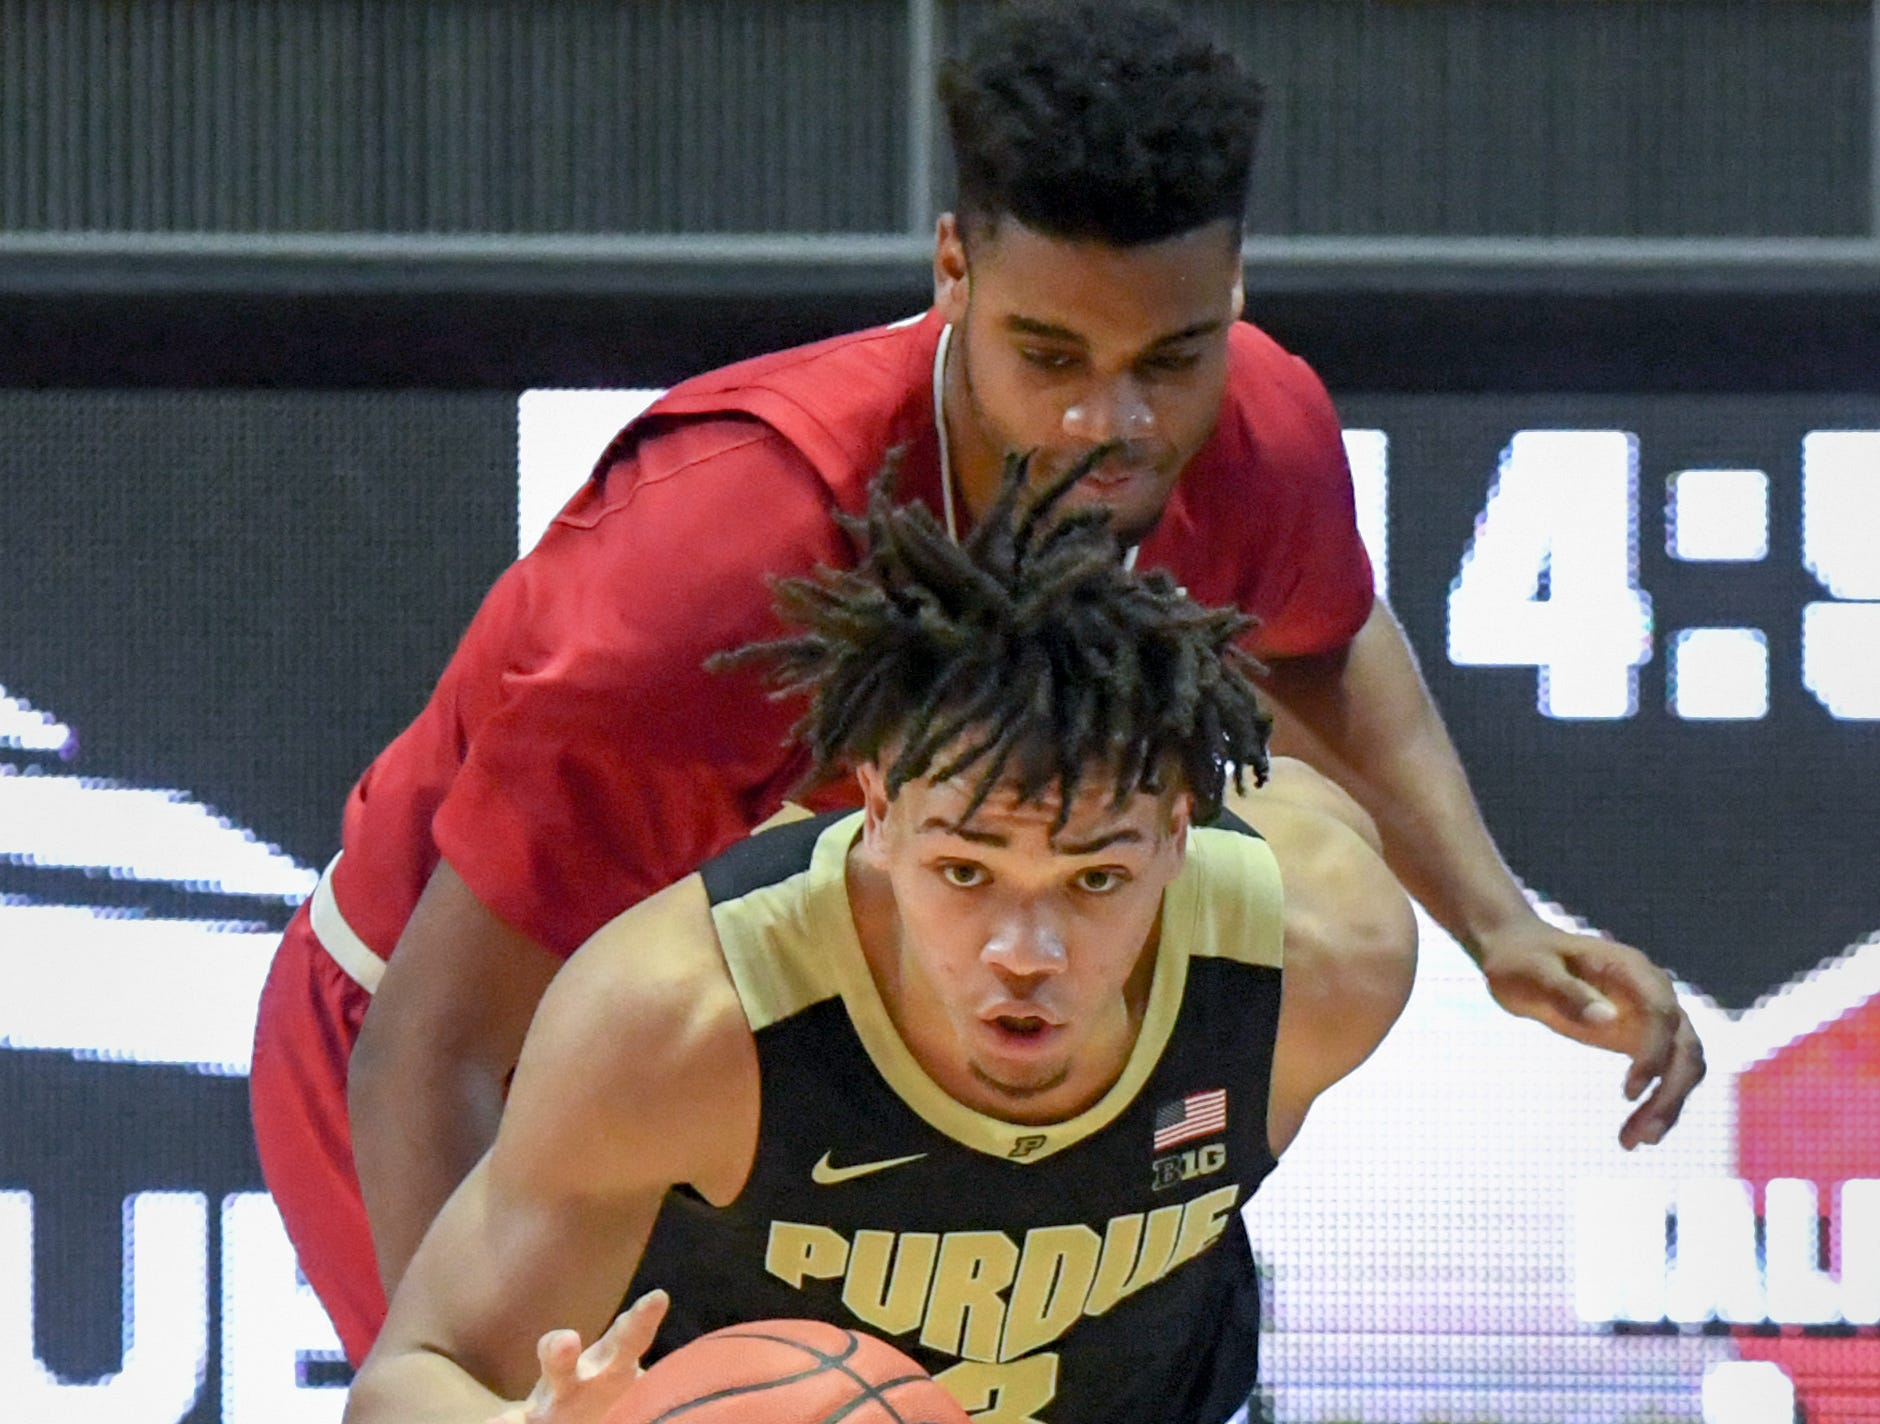 Action from Purdue against Indiana University on January 19, 2019. Purdue won the game 70-55 in West Lafayette. Carsen Edwards